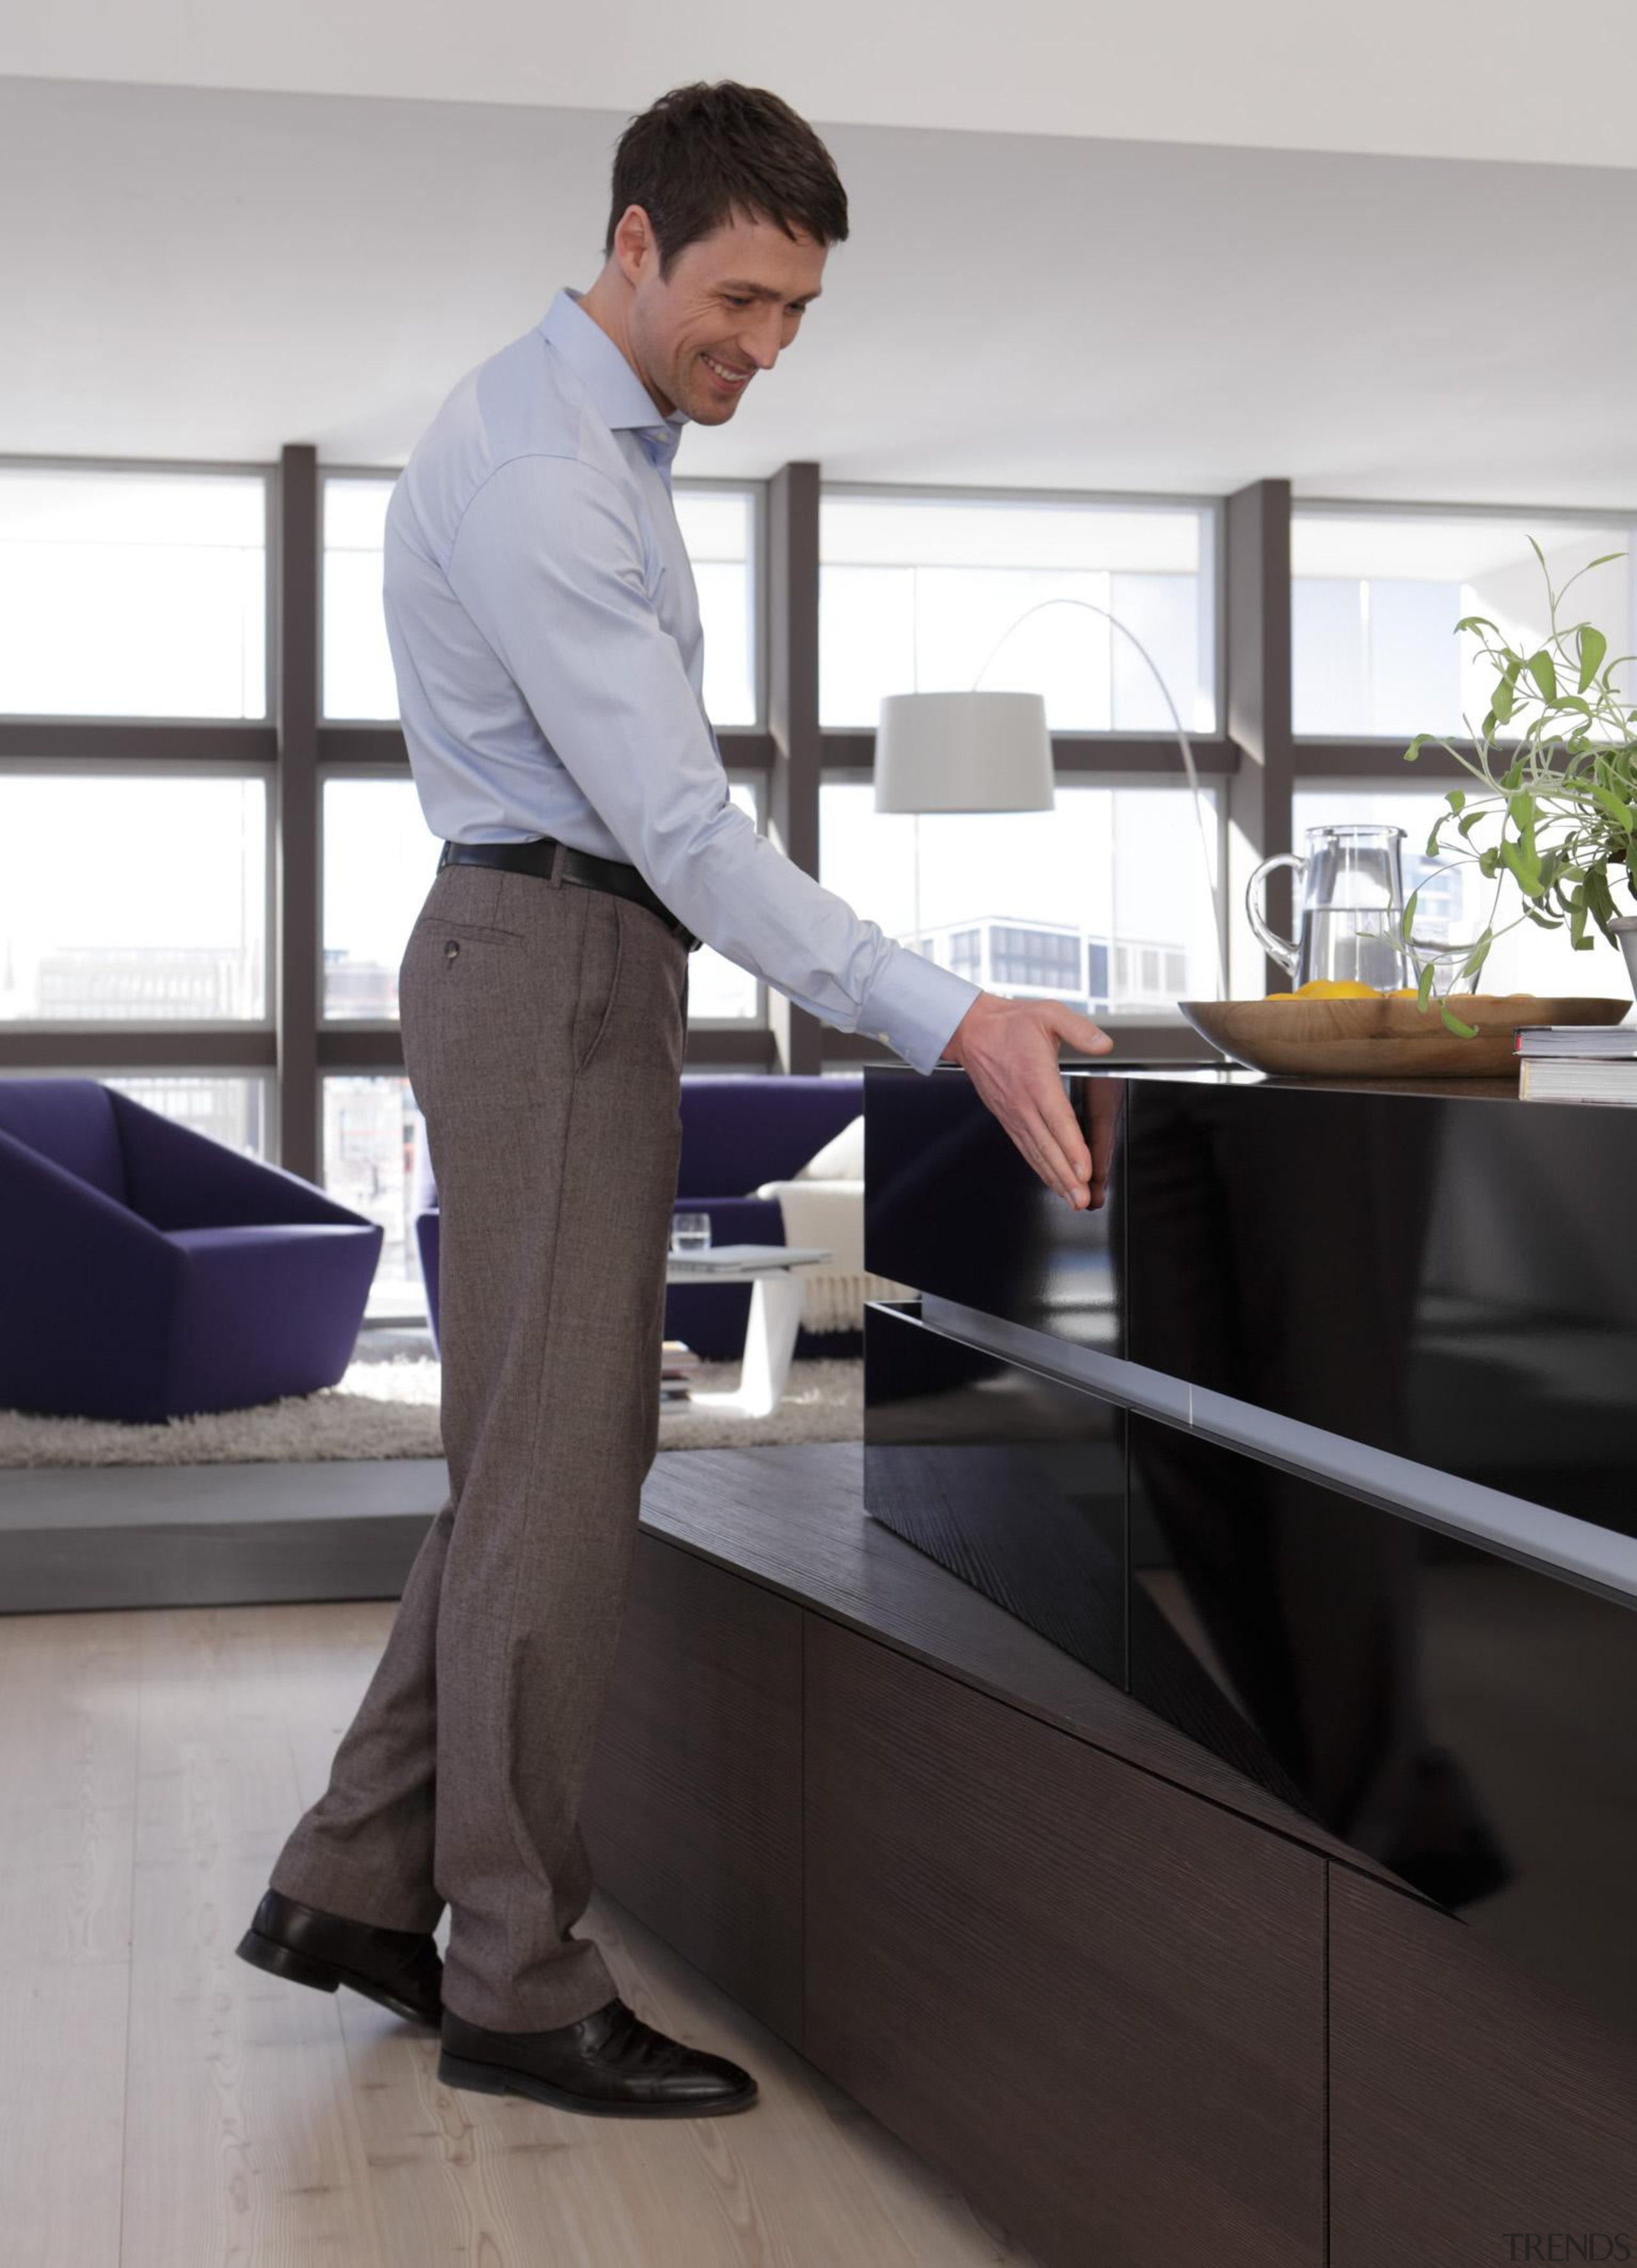 ArciTech is compatible with the Easys or Push desk, furniture, product, product design, professional, standing, suit, table, white, black